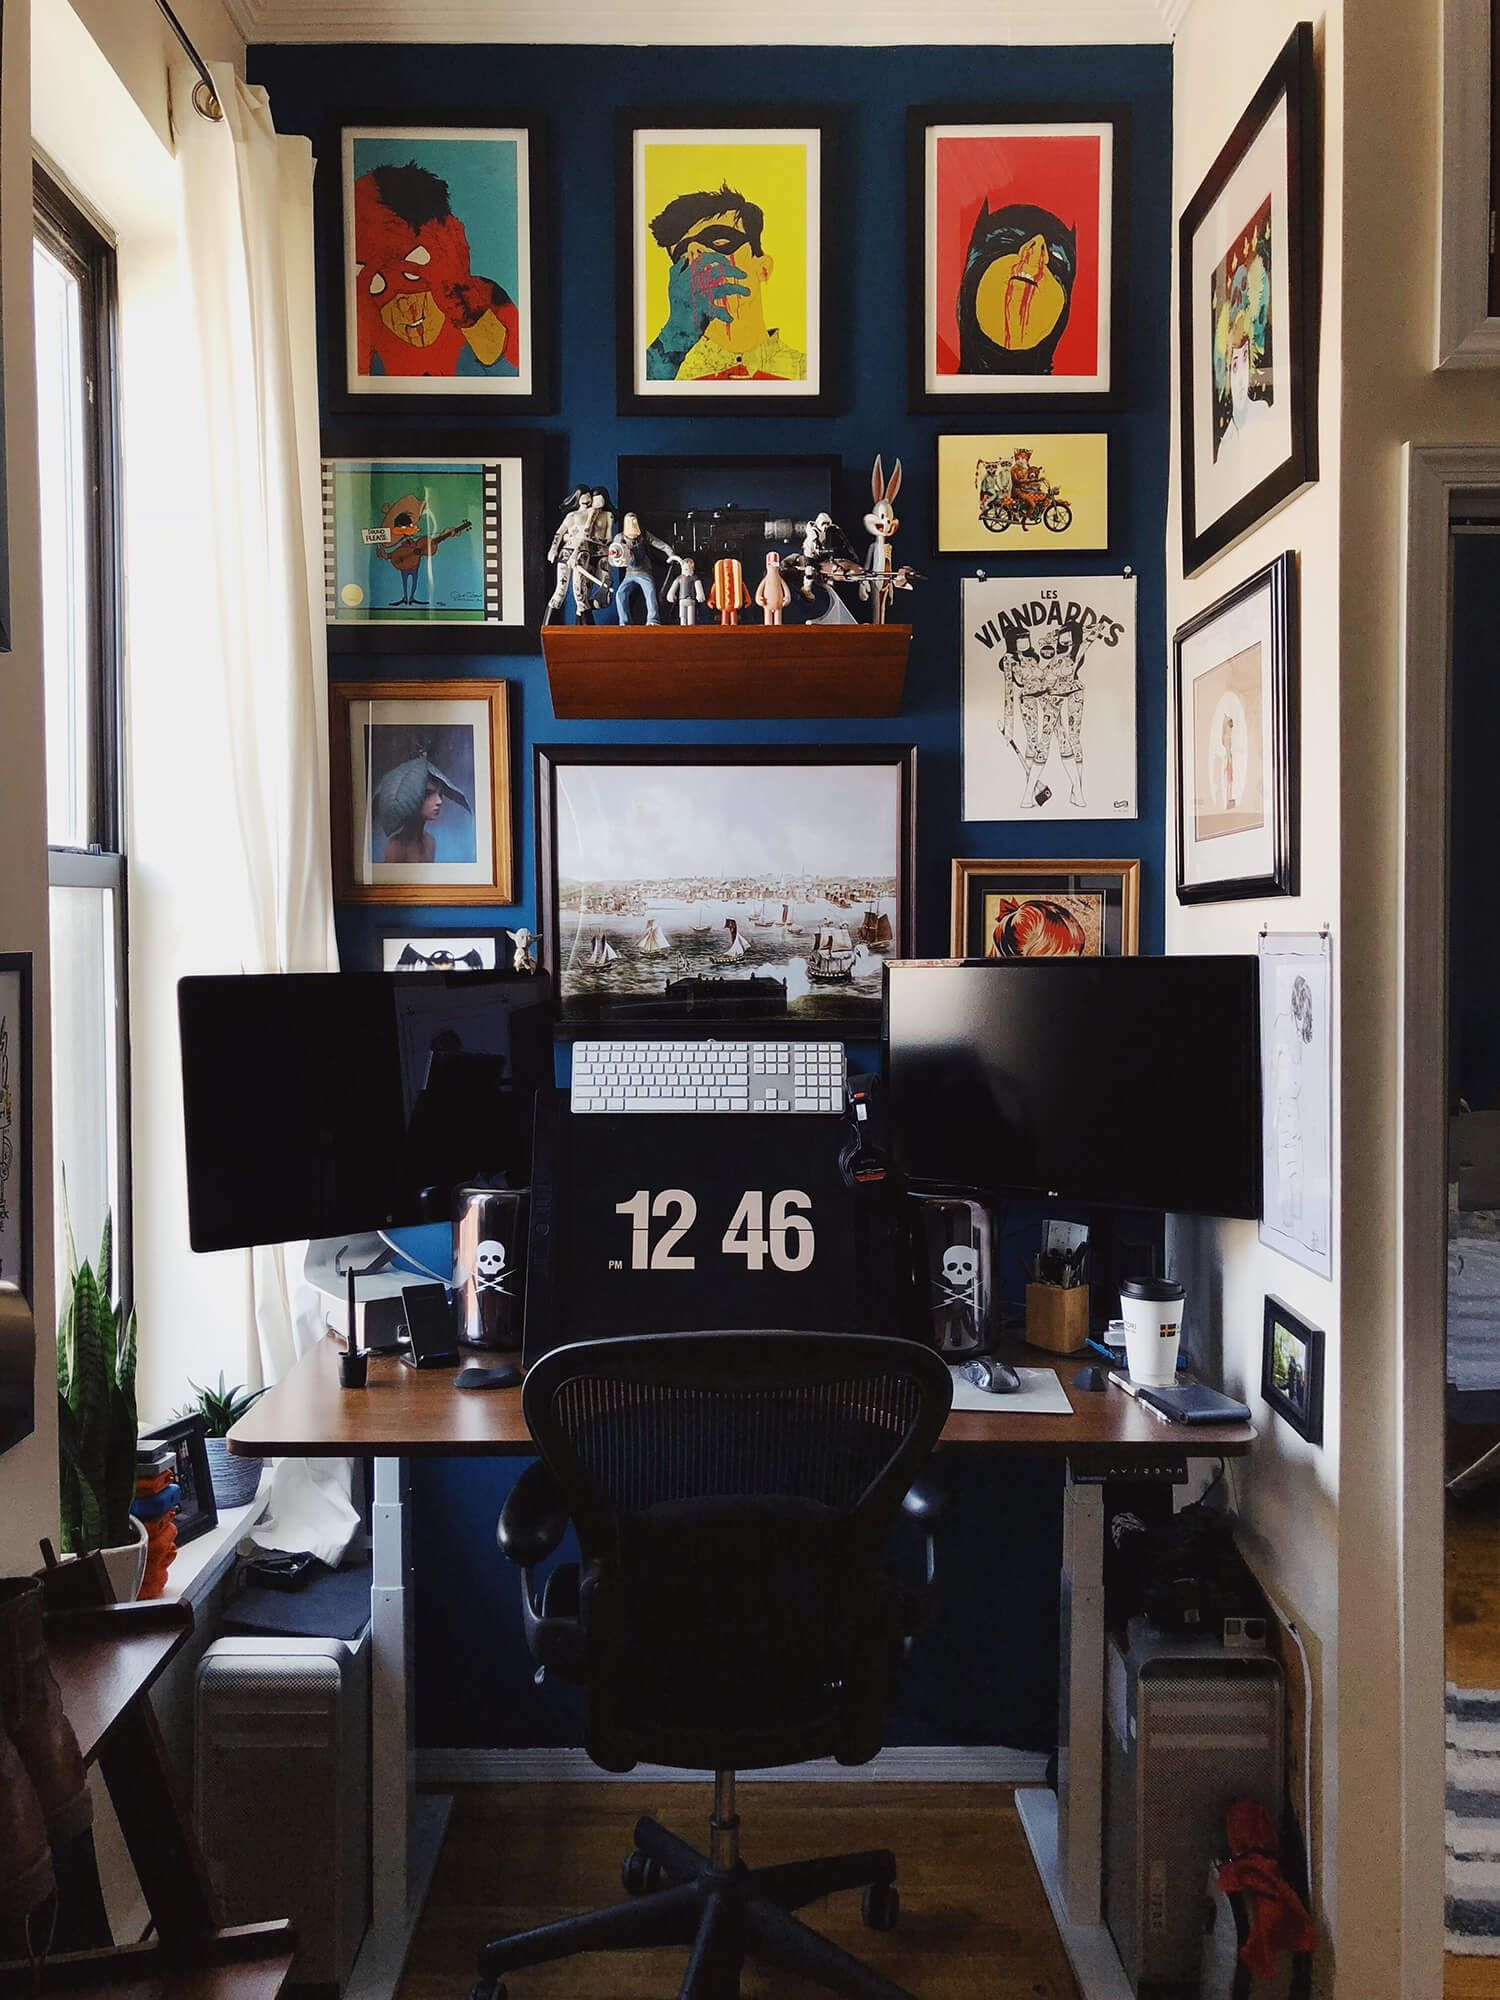 Reddit user truthgoblin decorated his battle nook cloffice with colourful Boneface wall art